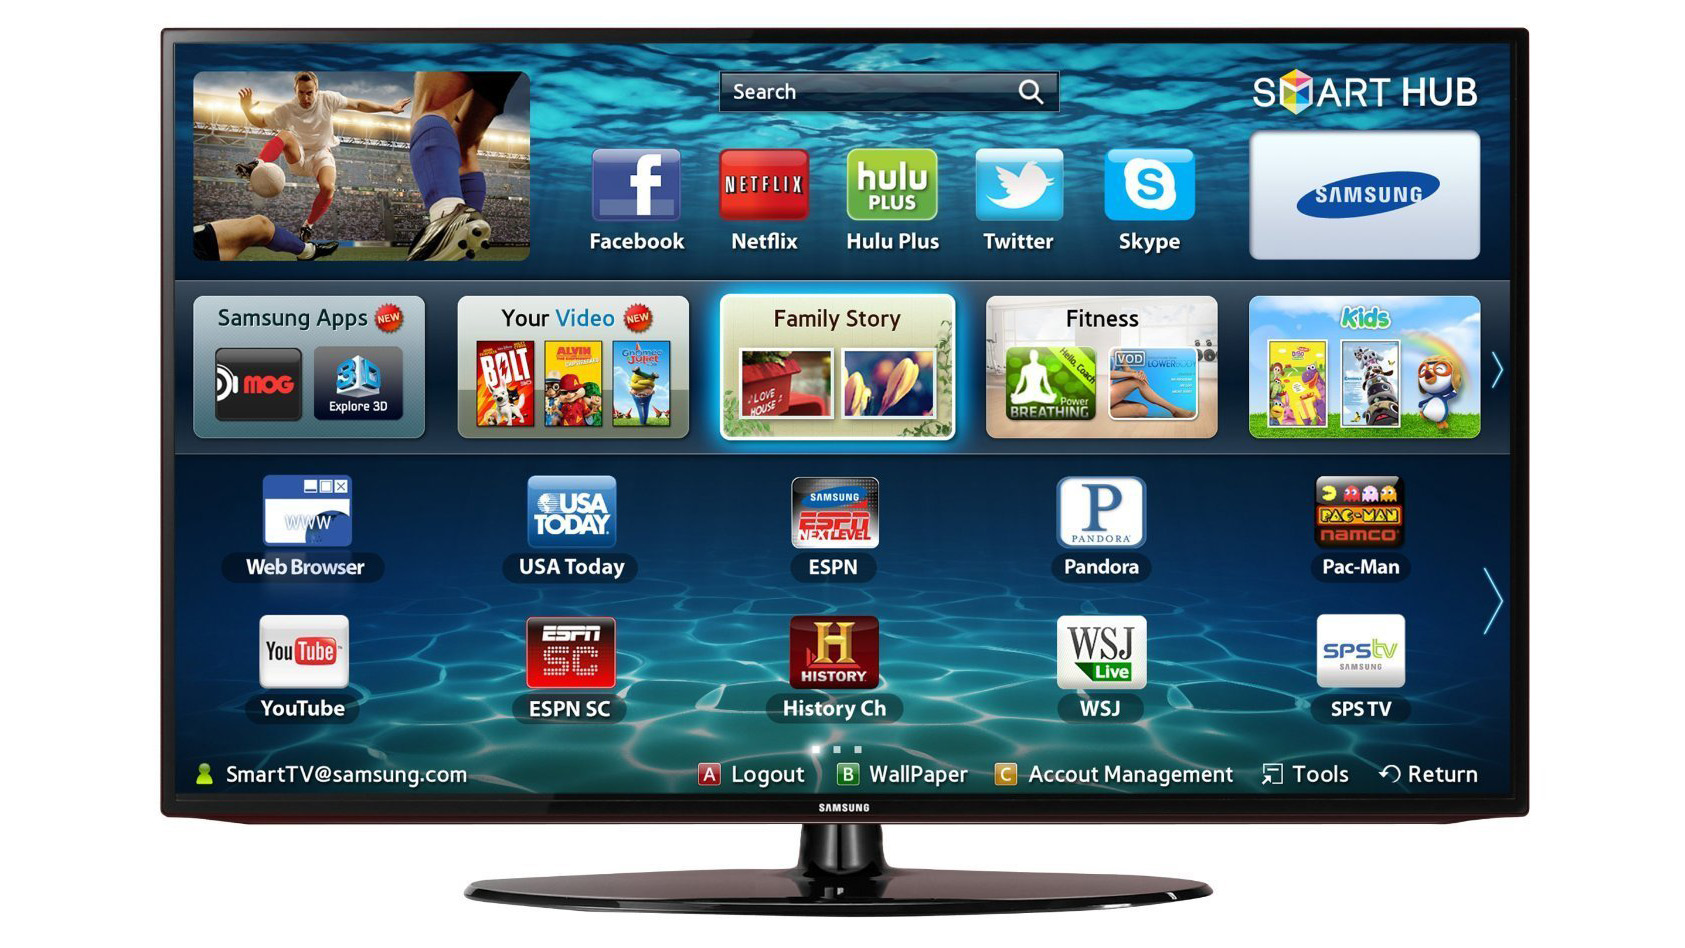 Samsung Flat Screen Tv Price The Best Small Tv Today 32 Inches Tested